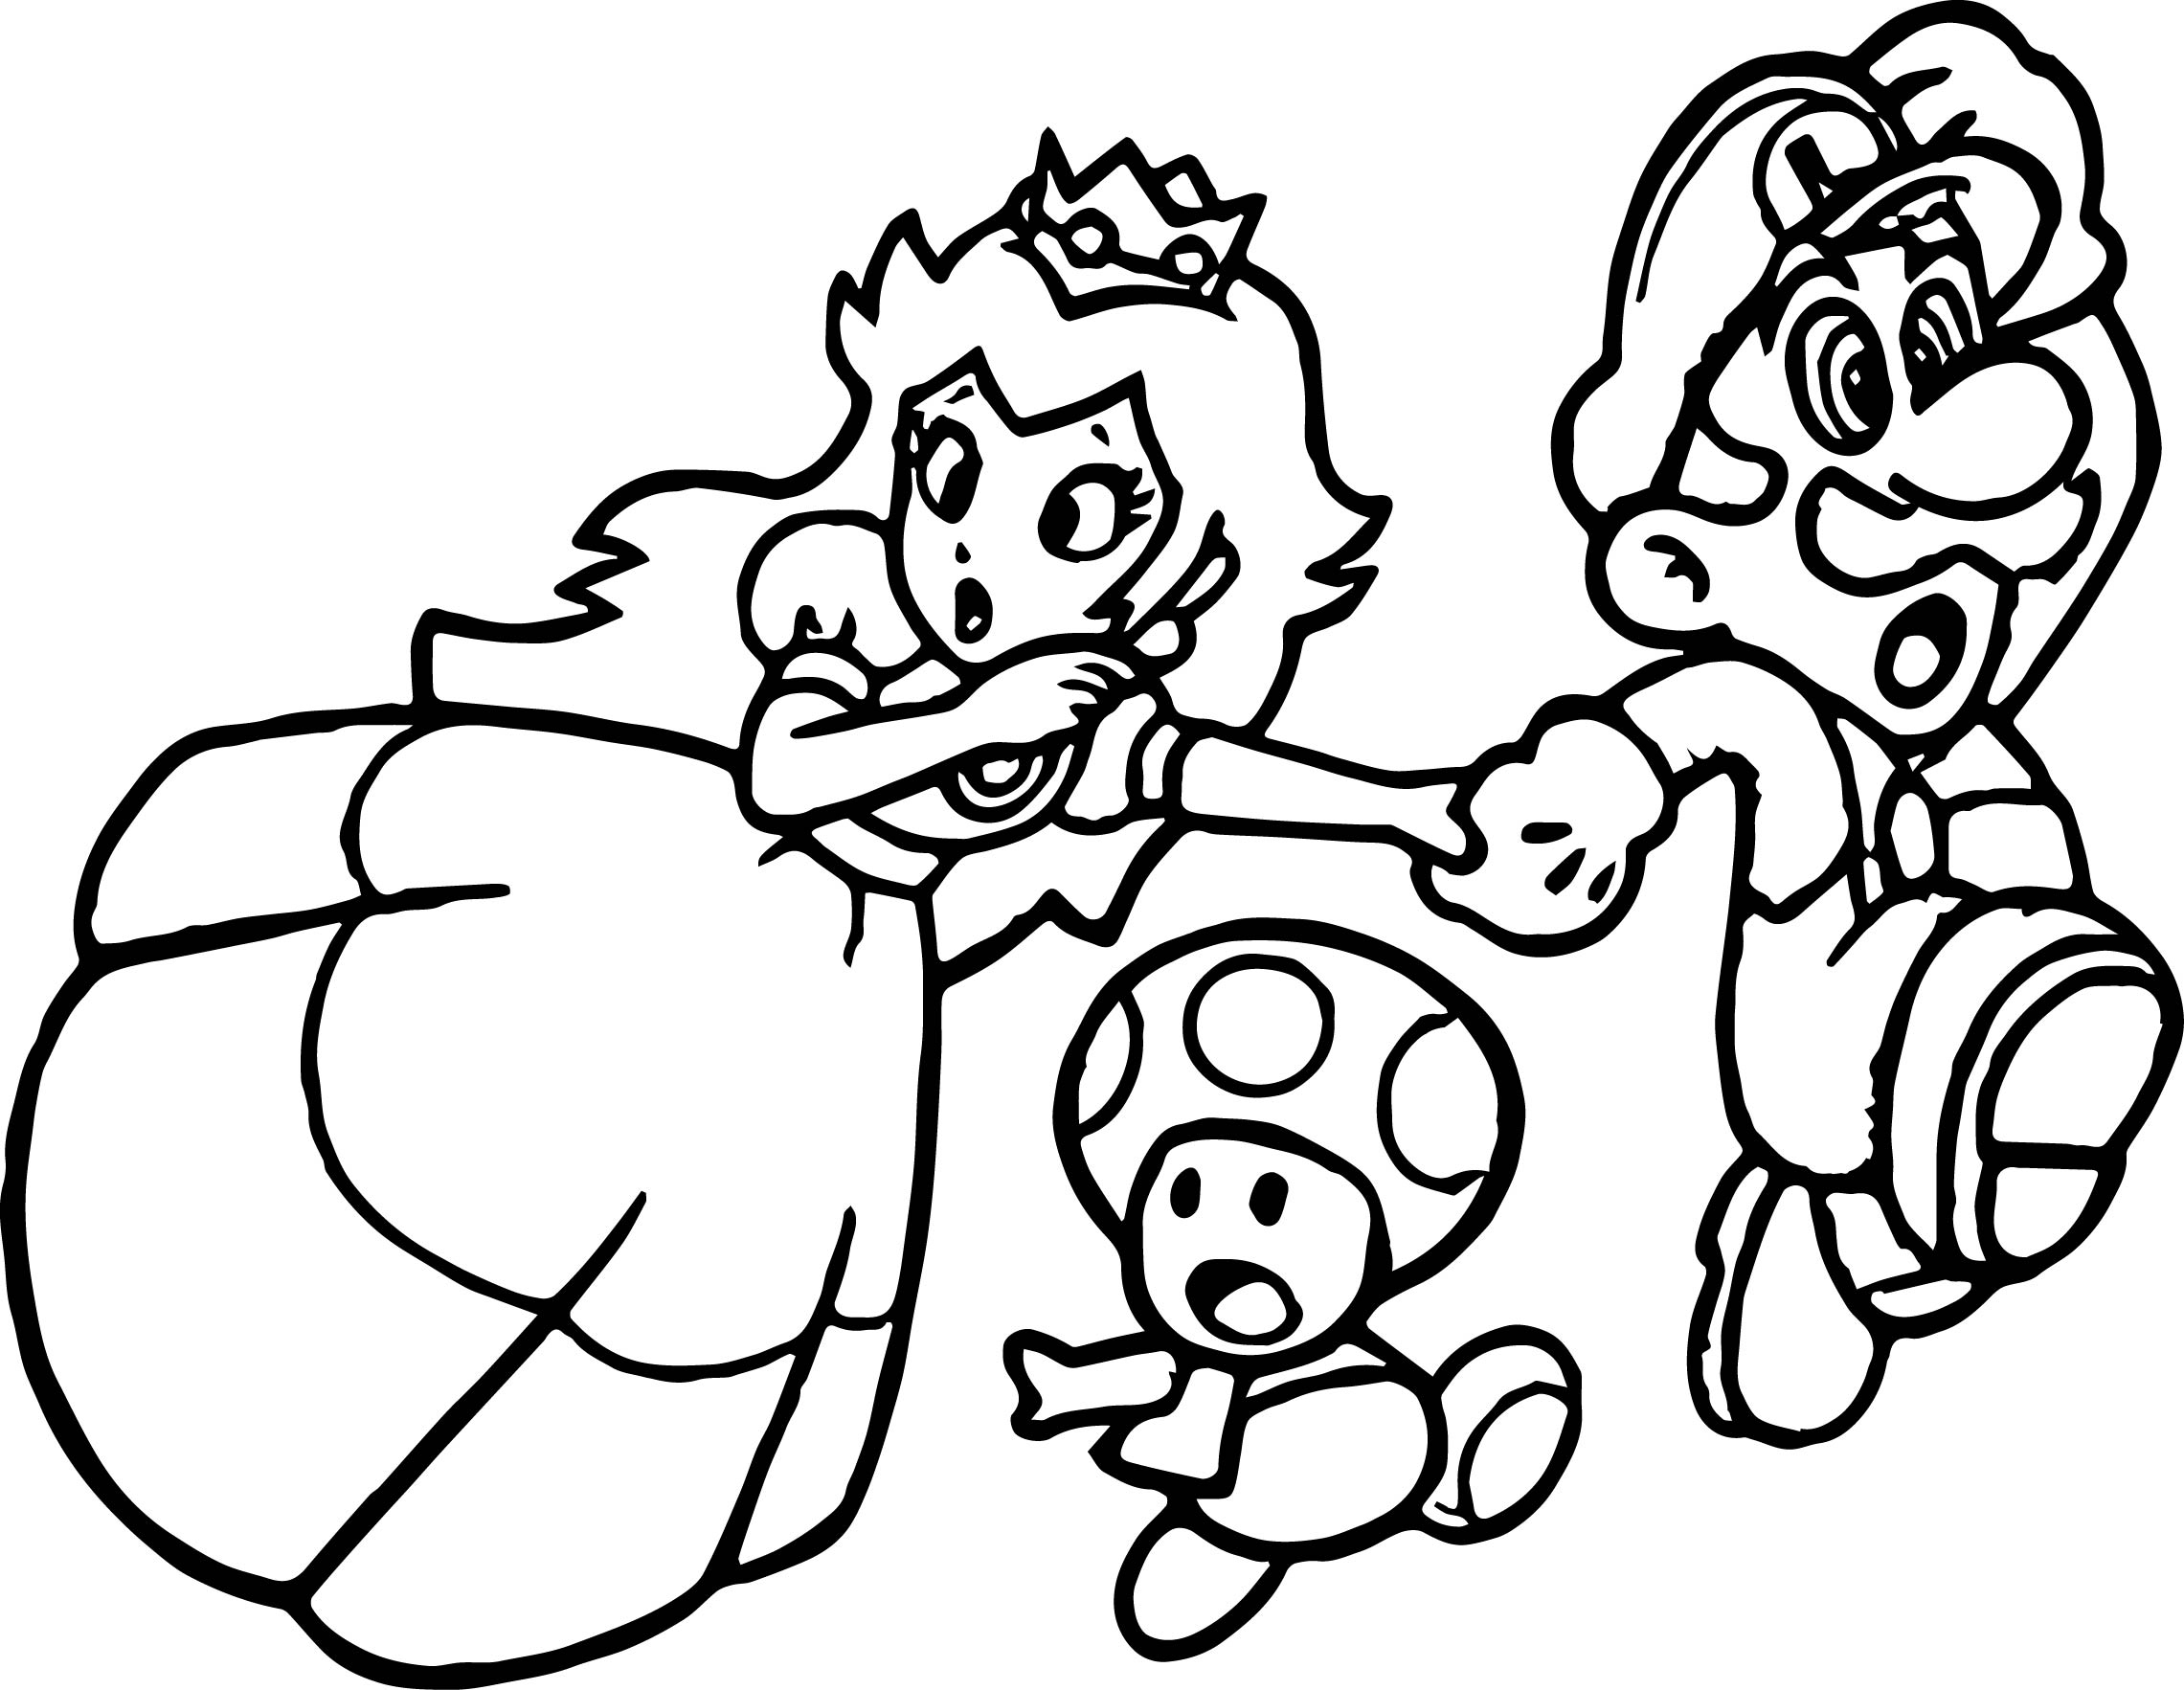 super coloring pages - super mario princess mushroom coloring page